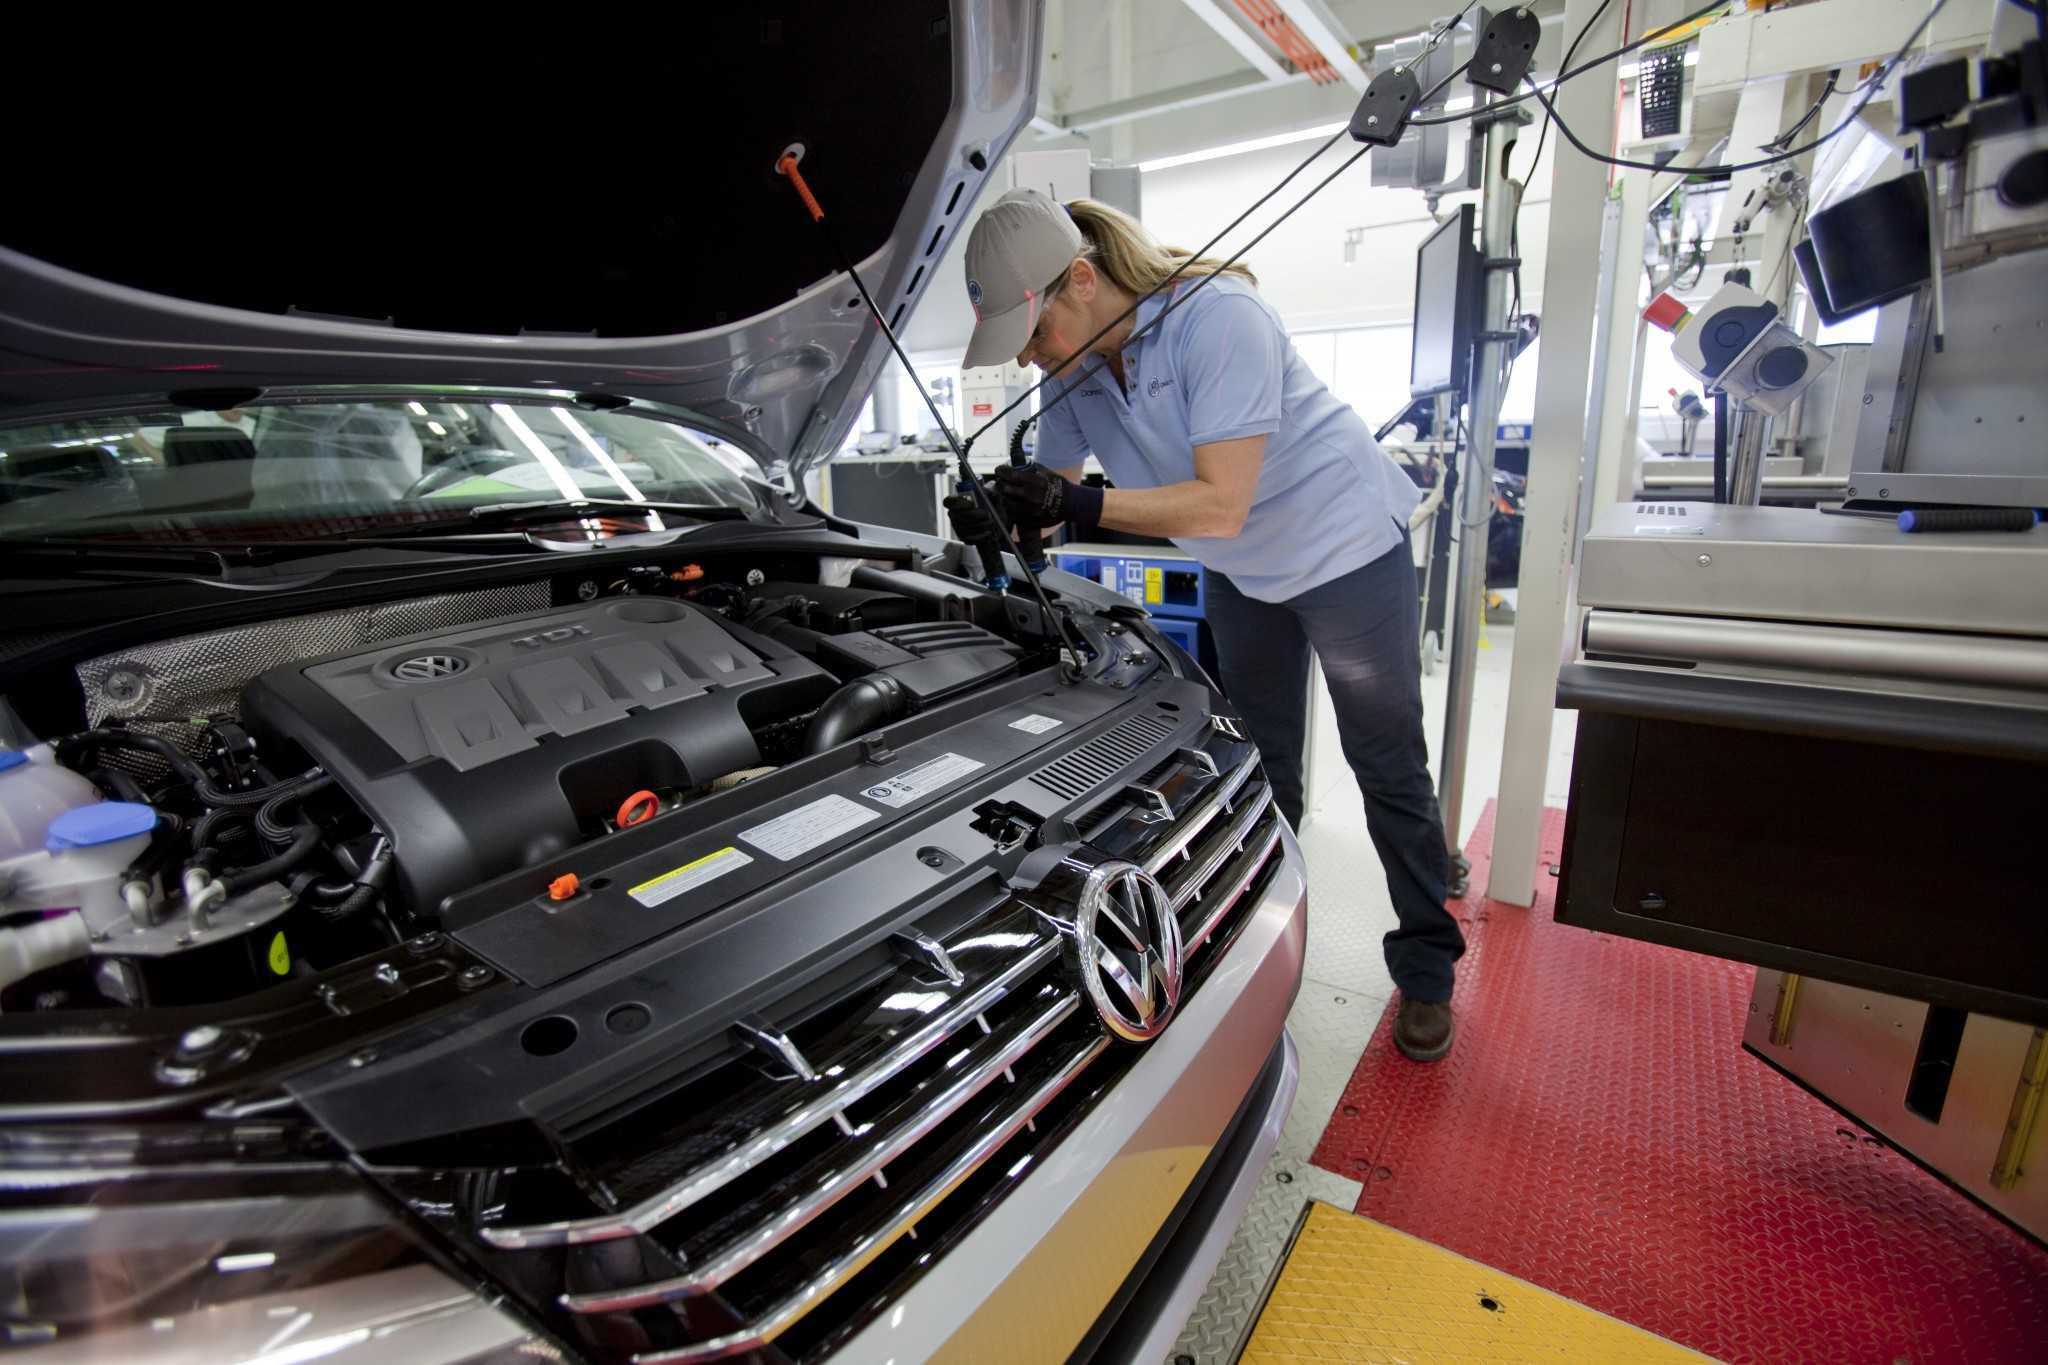 Volkswagen+production+plant+in+Chattanooga%2C+Tennessee%2C+in+2012.